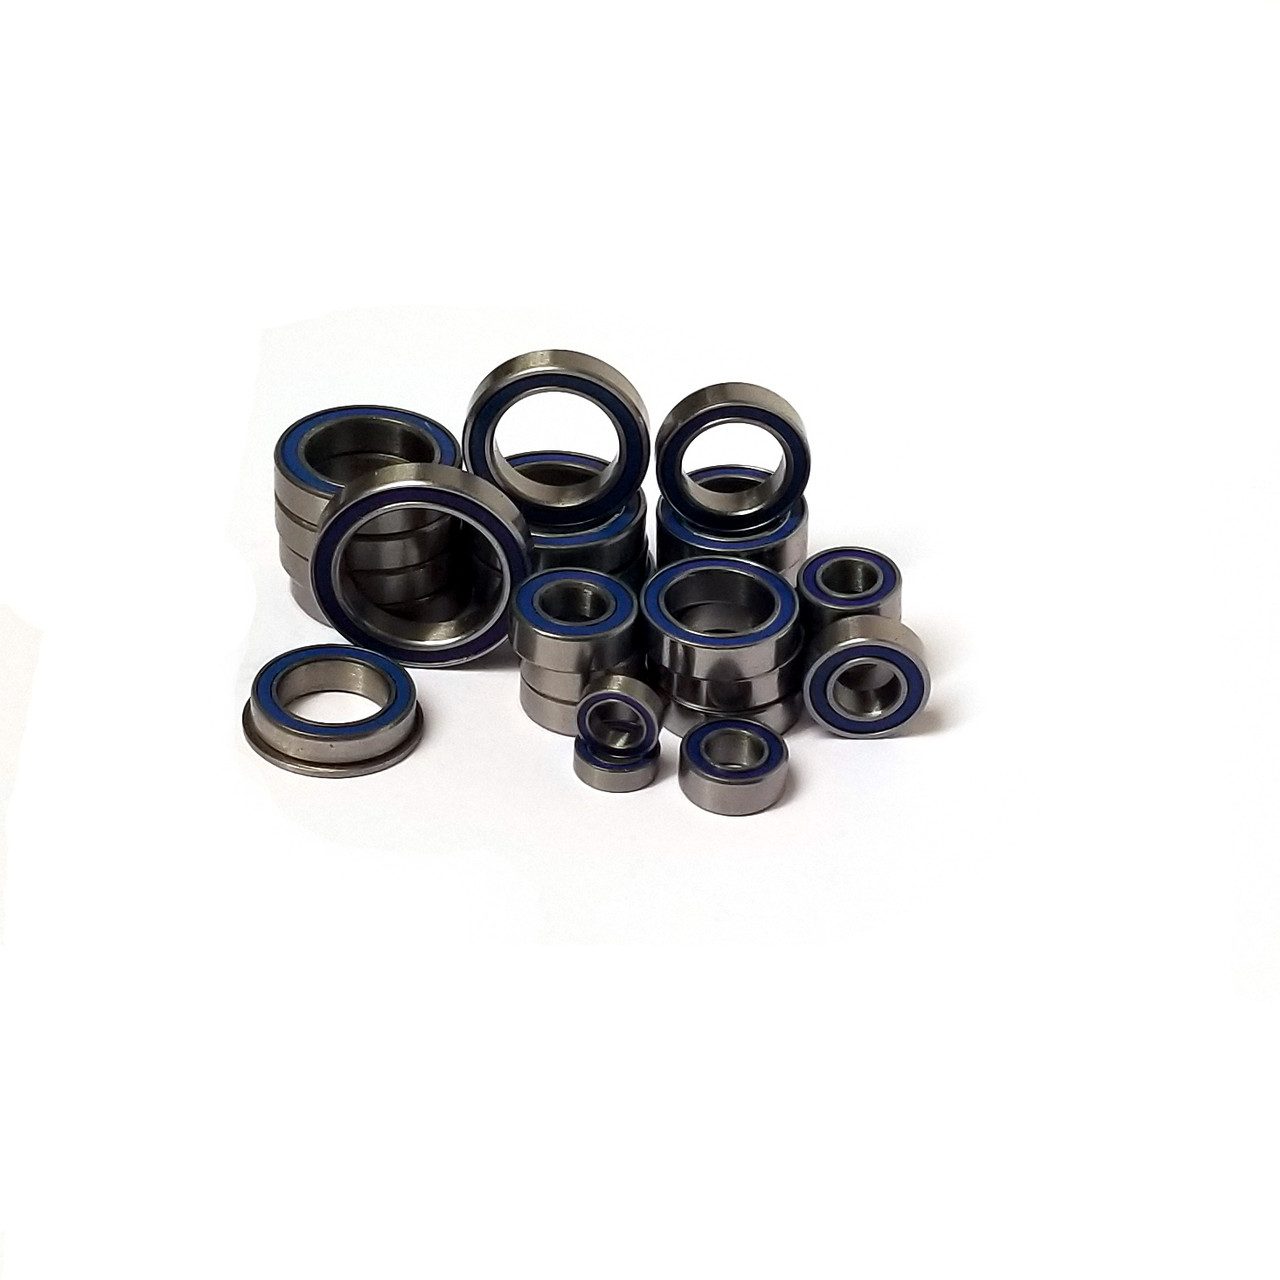 ARRMA Kraton & Outcast & 6S BLX 22 Piece Full Bearing Kits!